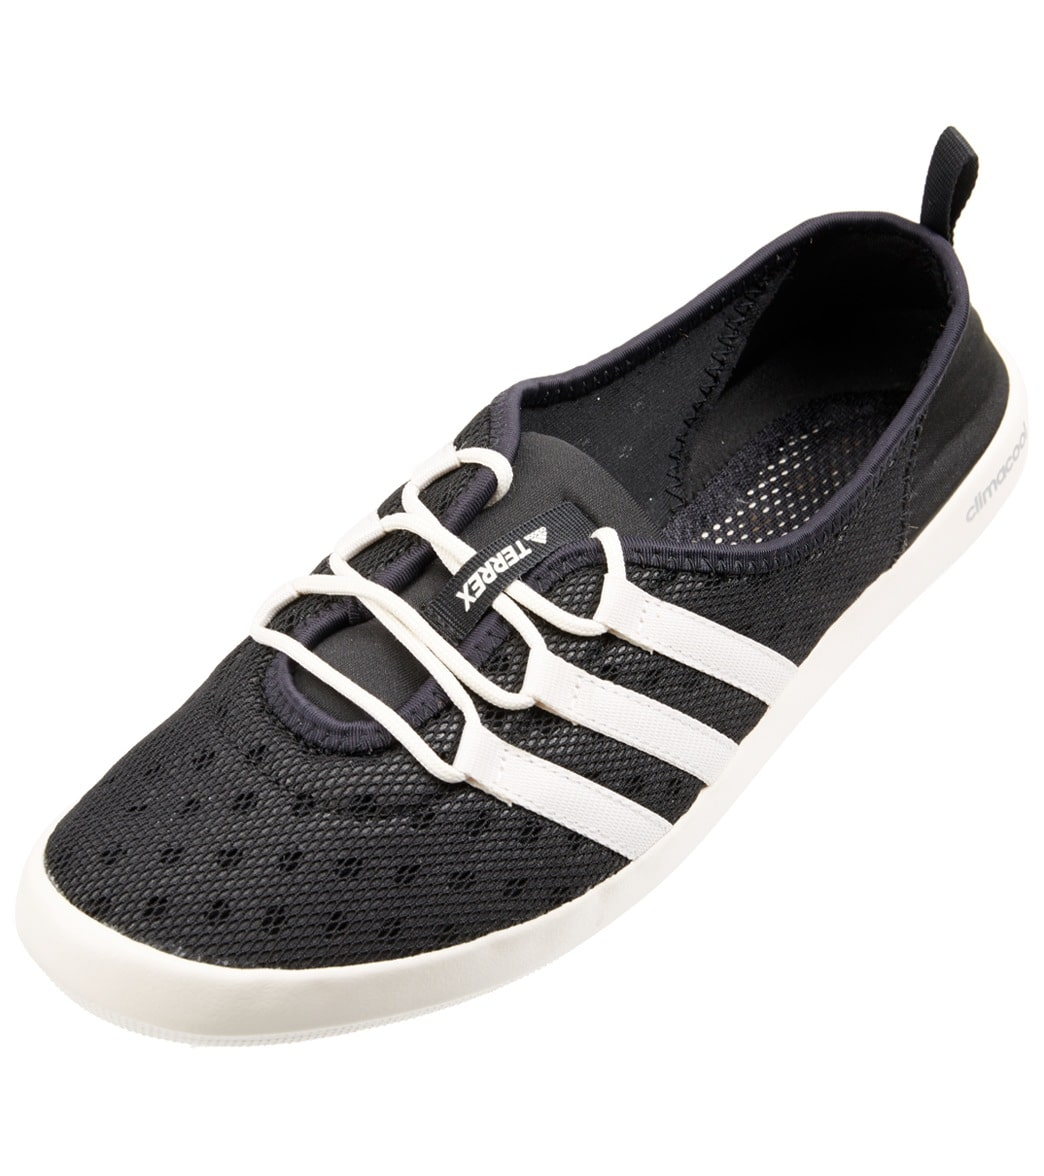 newest 8c199 05d22 Adidas Womens Climacool Boat Sleek Water Shoes at SwimOutlet.com - Free  Shipping